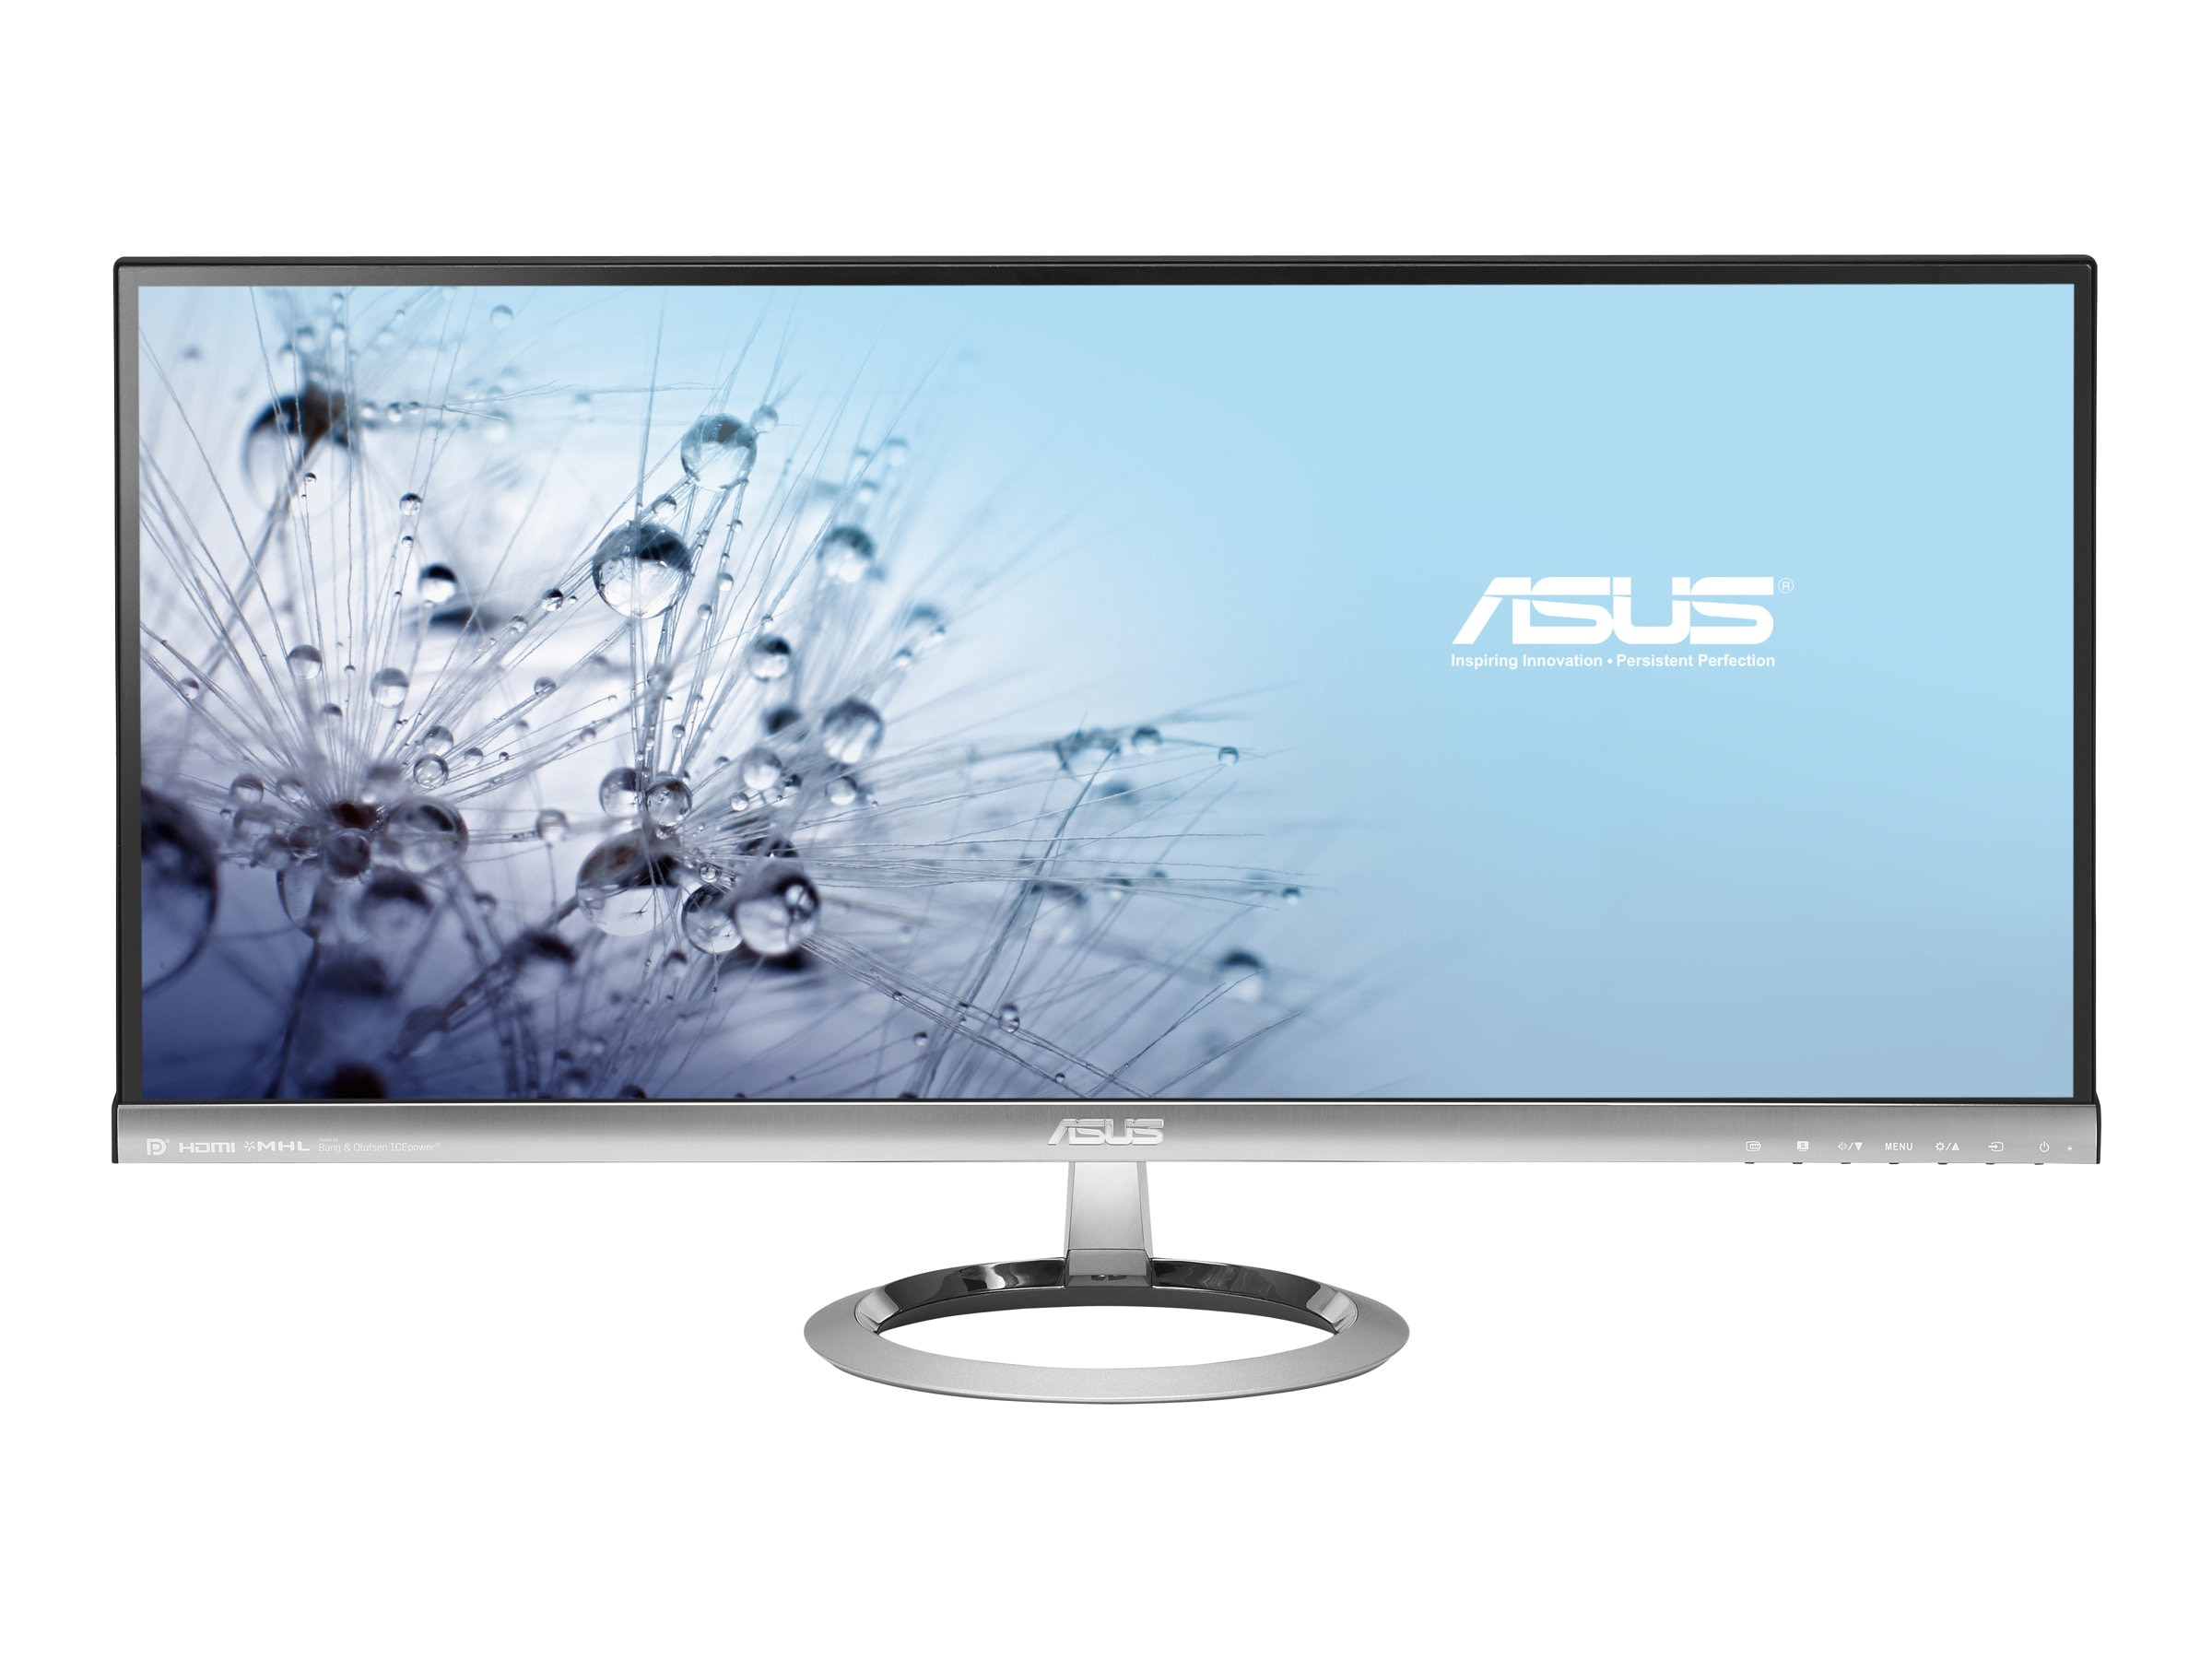 Asus 29 MX299Q LED-LCD Ultrawide Frameless Monitor, Black